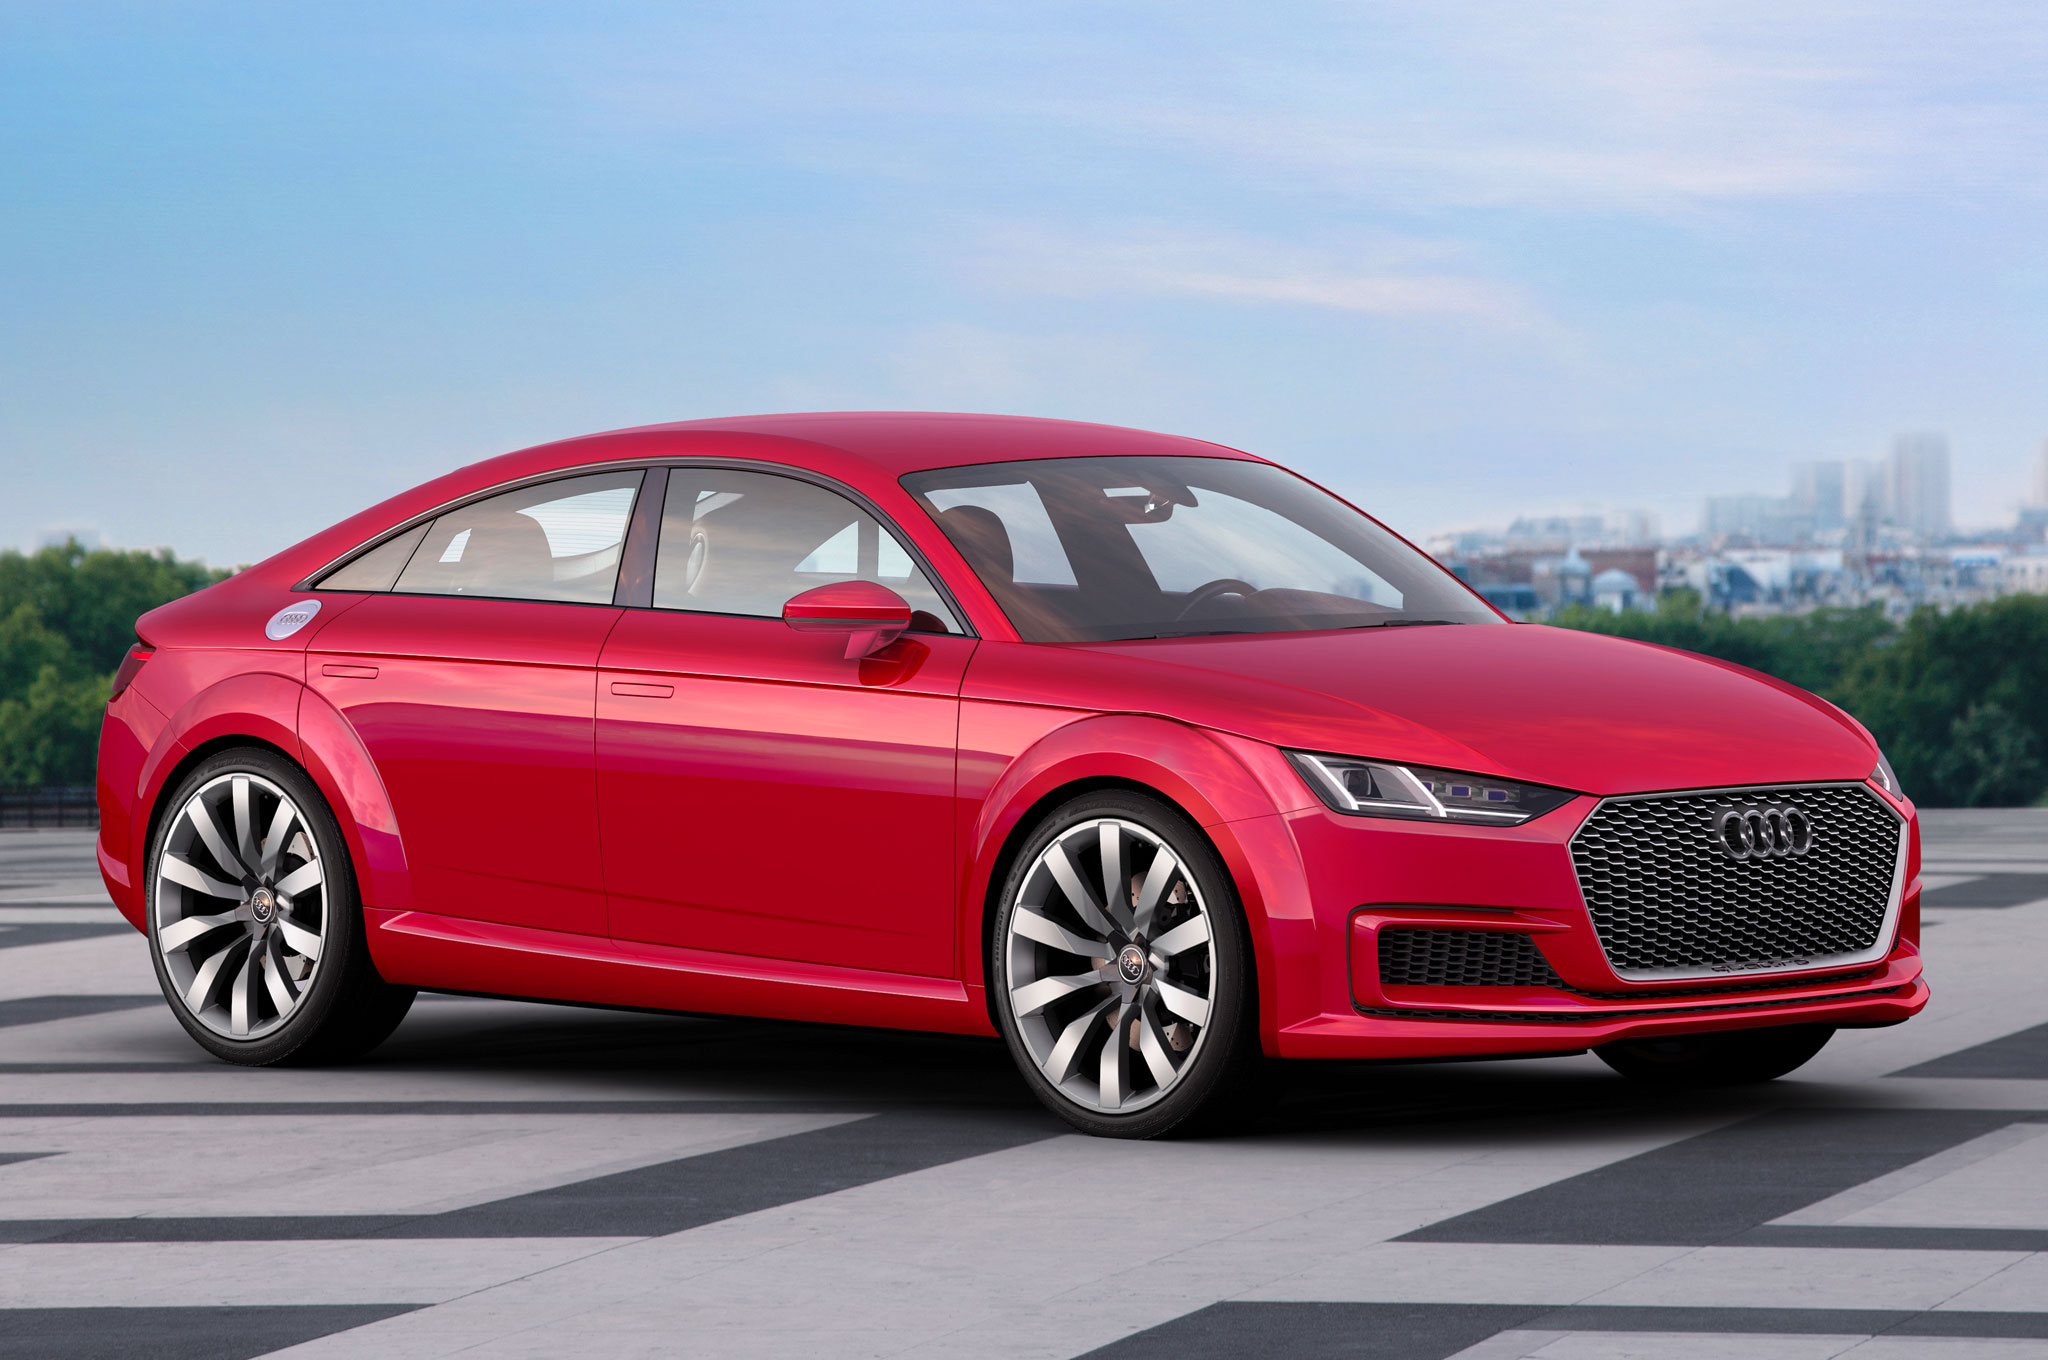 Audi TT Sportback Concept Front Three Quarter View 21